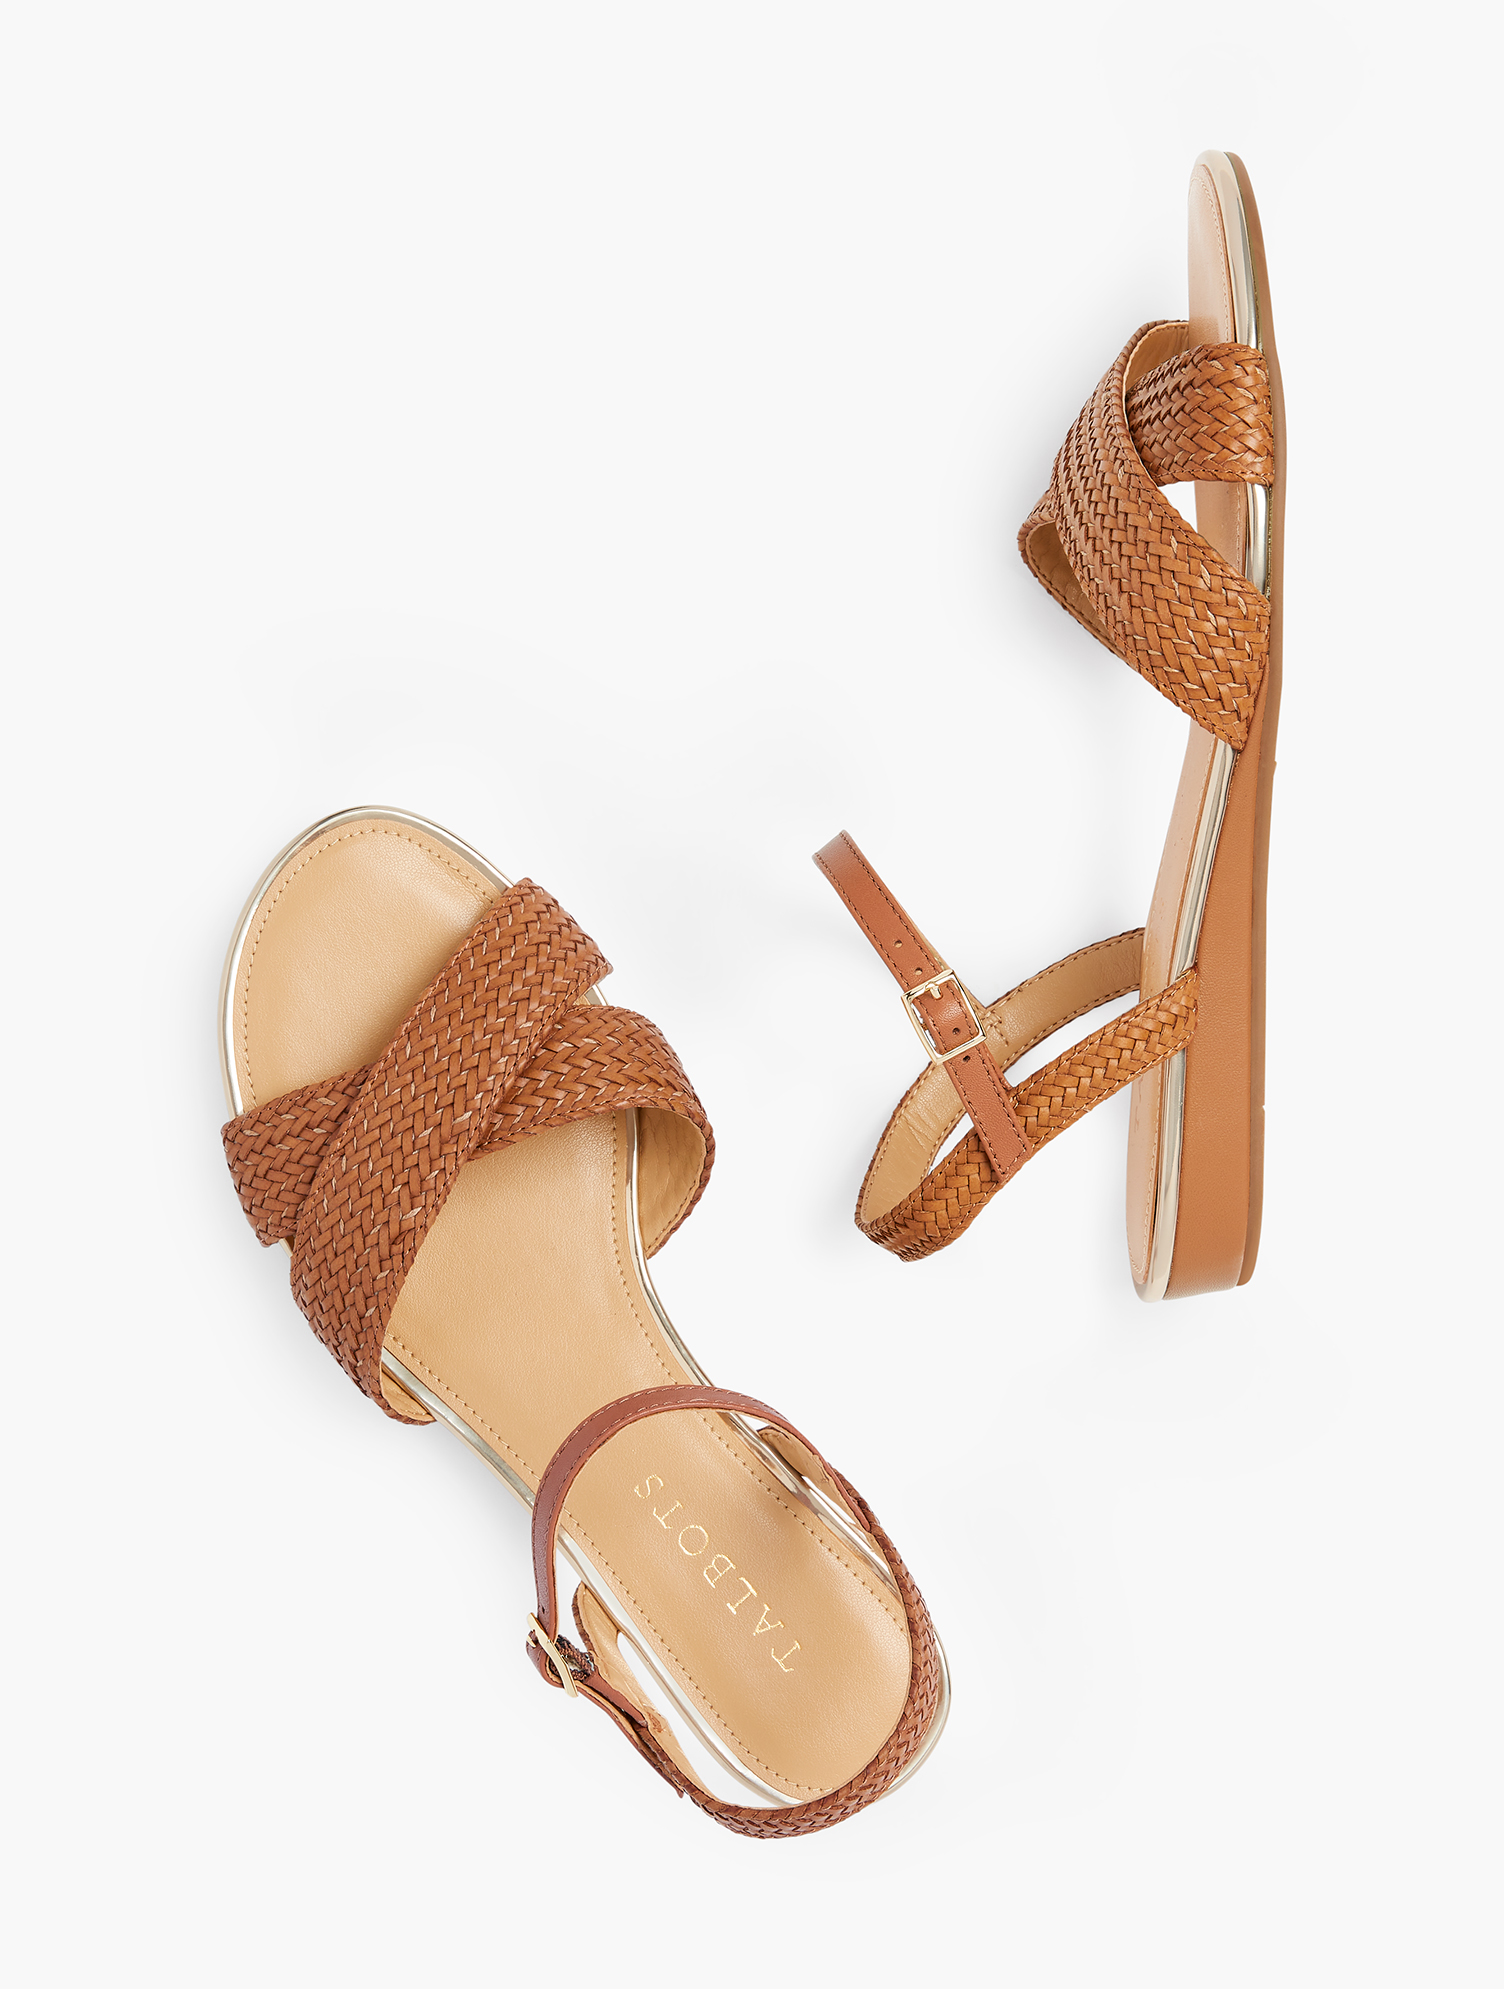 The Daisy. Our modern micro-wedge gives you just the lift you need. Classic and comfortable. Features Gift Box/Gift Wrap is not available for this item 3/4 inches Heel Round toe 3MM Memory foam footbed Imported Material: 100% Polyurethane Daisy Micro Wedge Sandals - Solid - Havana Tan - 11M Talbots